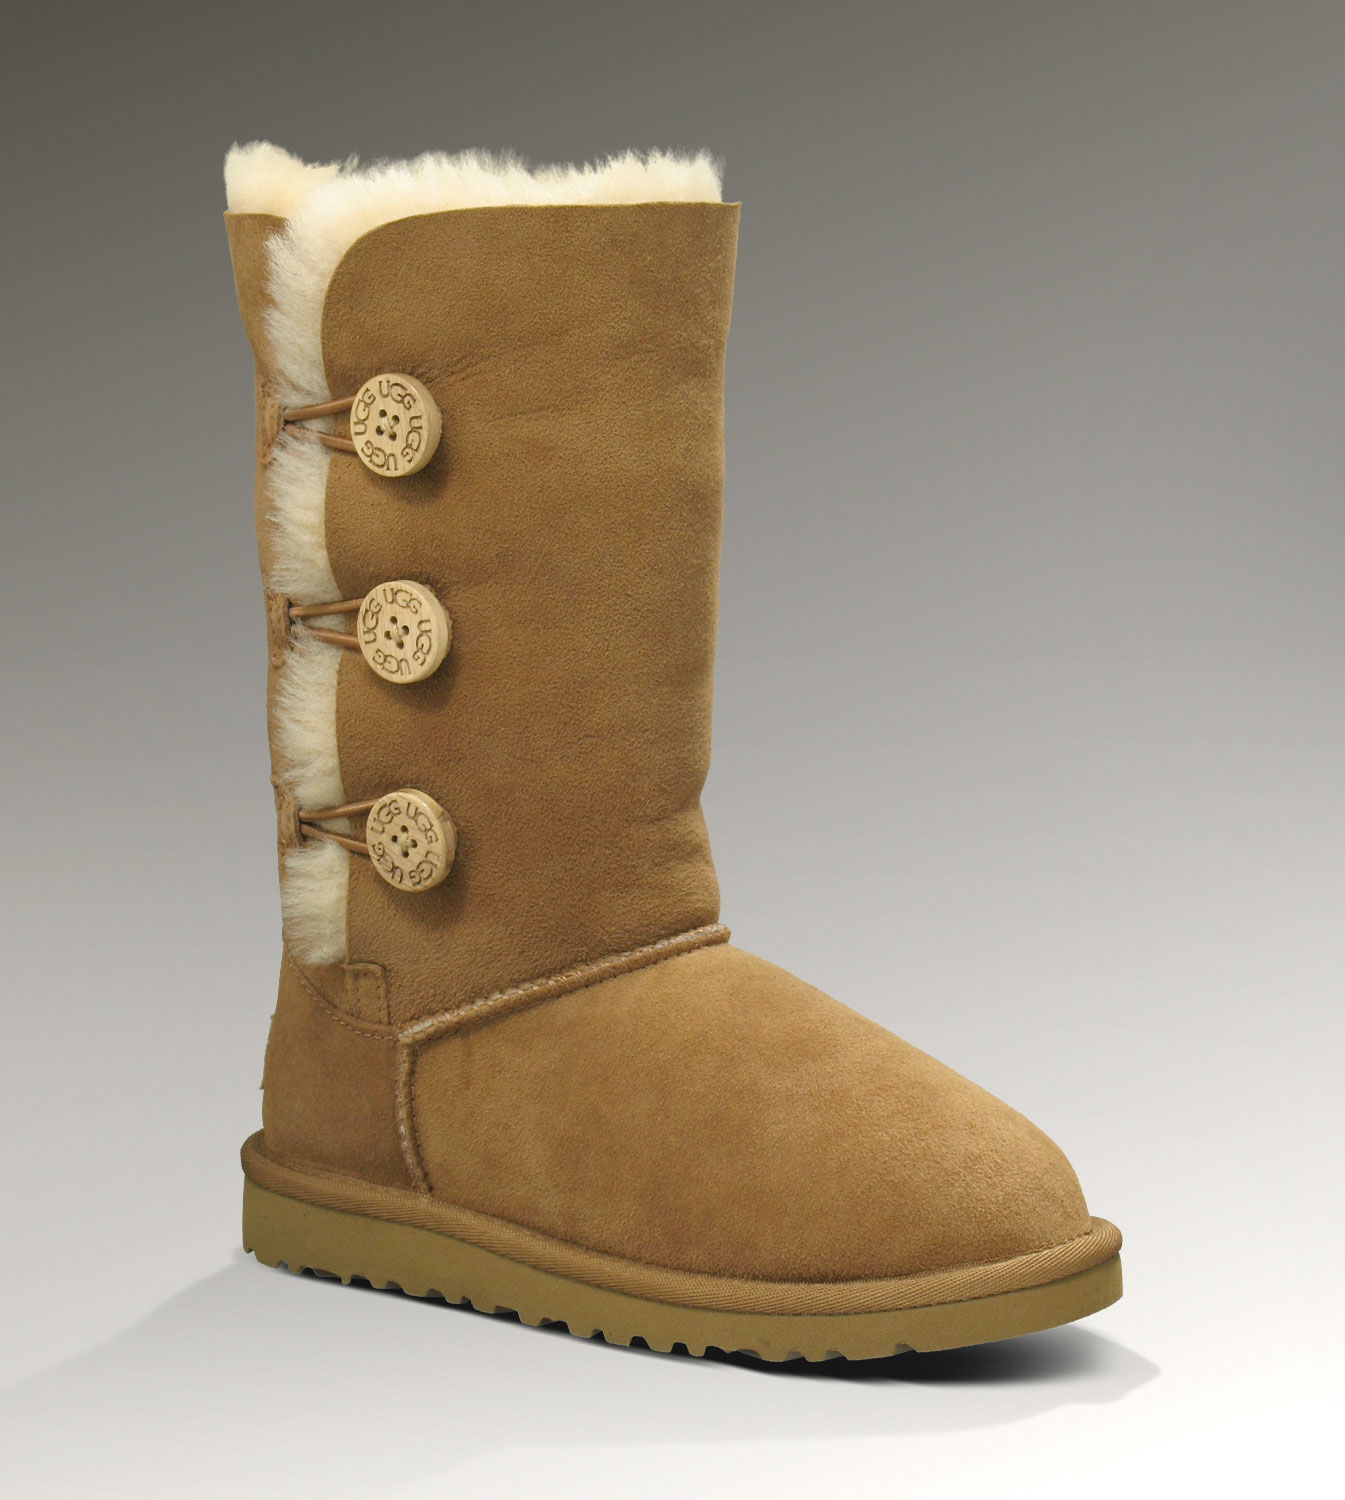 UGG Bailey Button Triplet 1962 Chestnut Boots